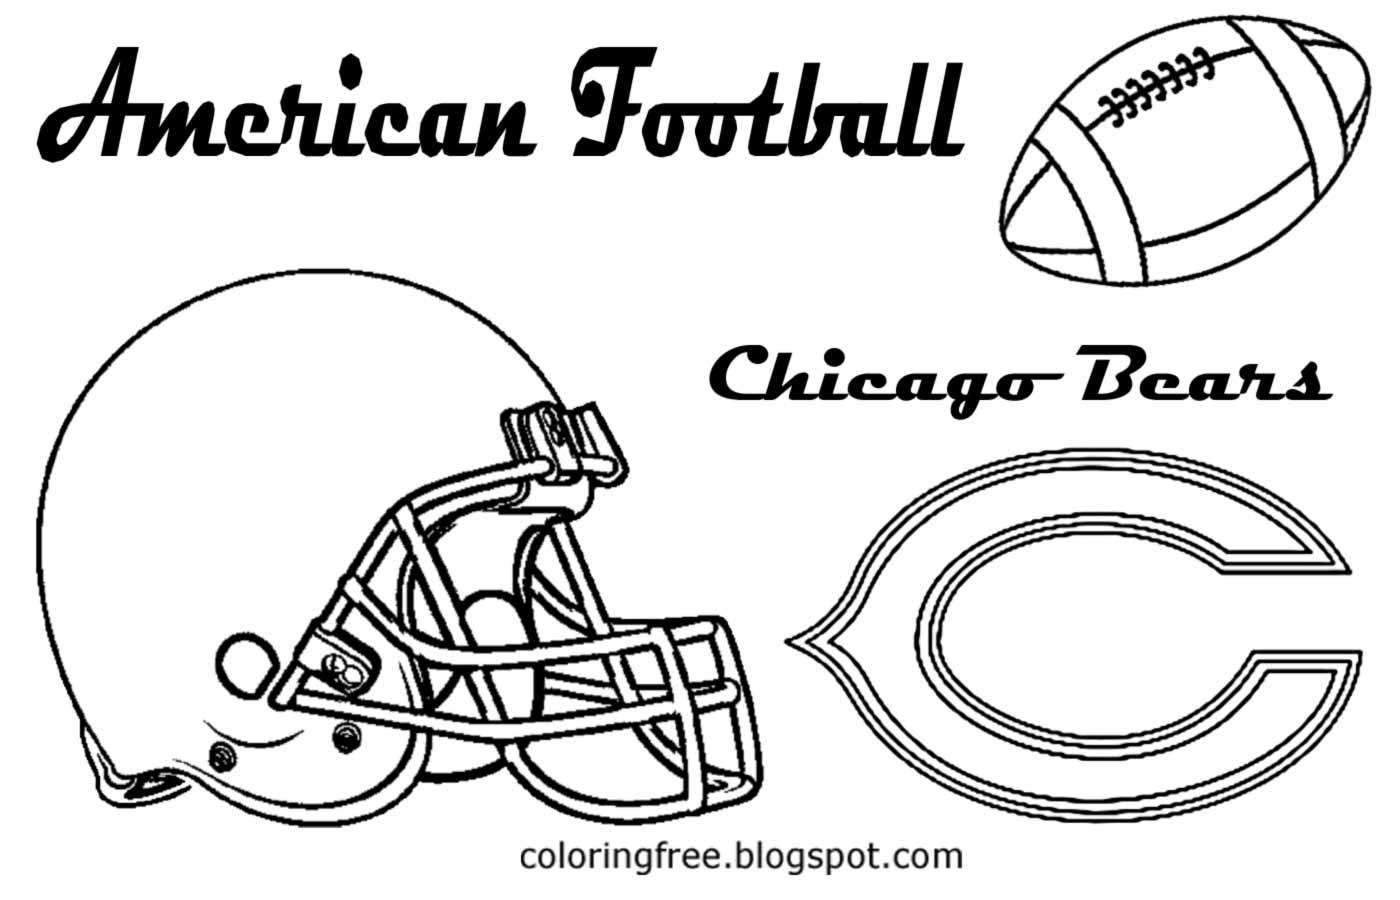 chicago bears coloring pages chicago cubs bear coloring page coloring pages bears chicago pages coloring